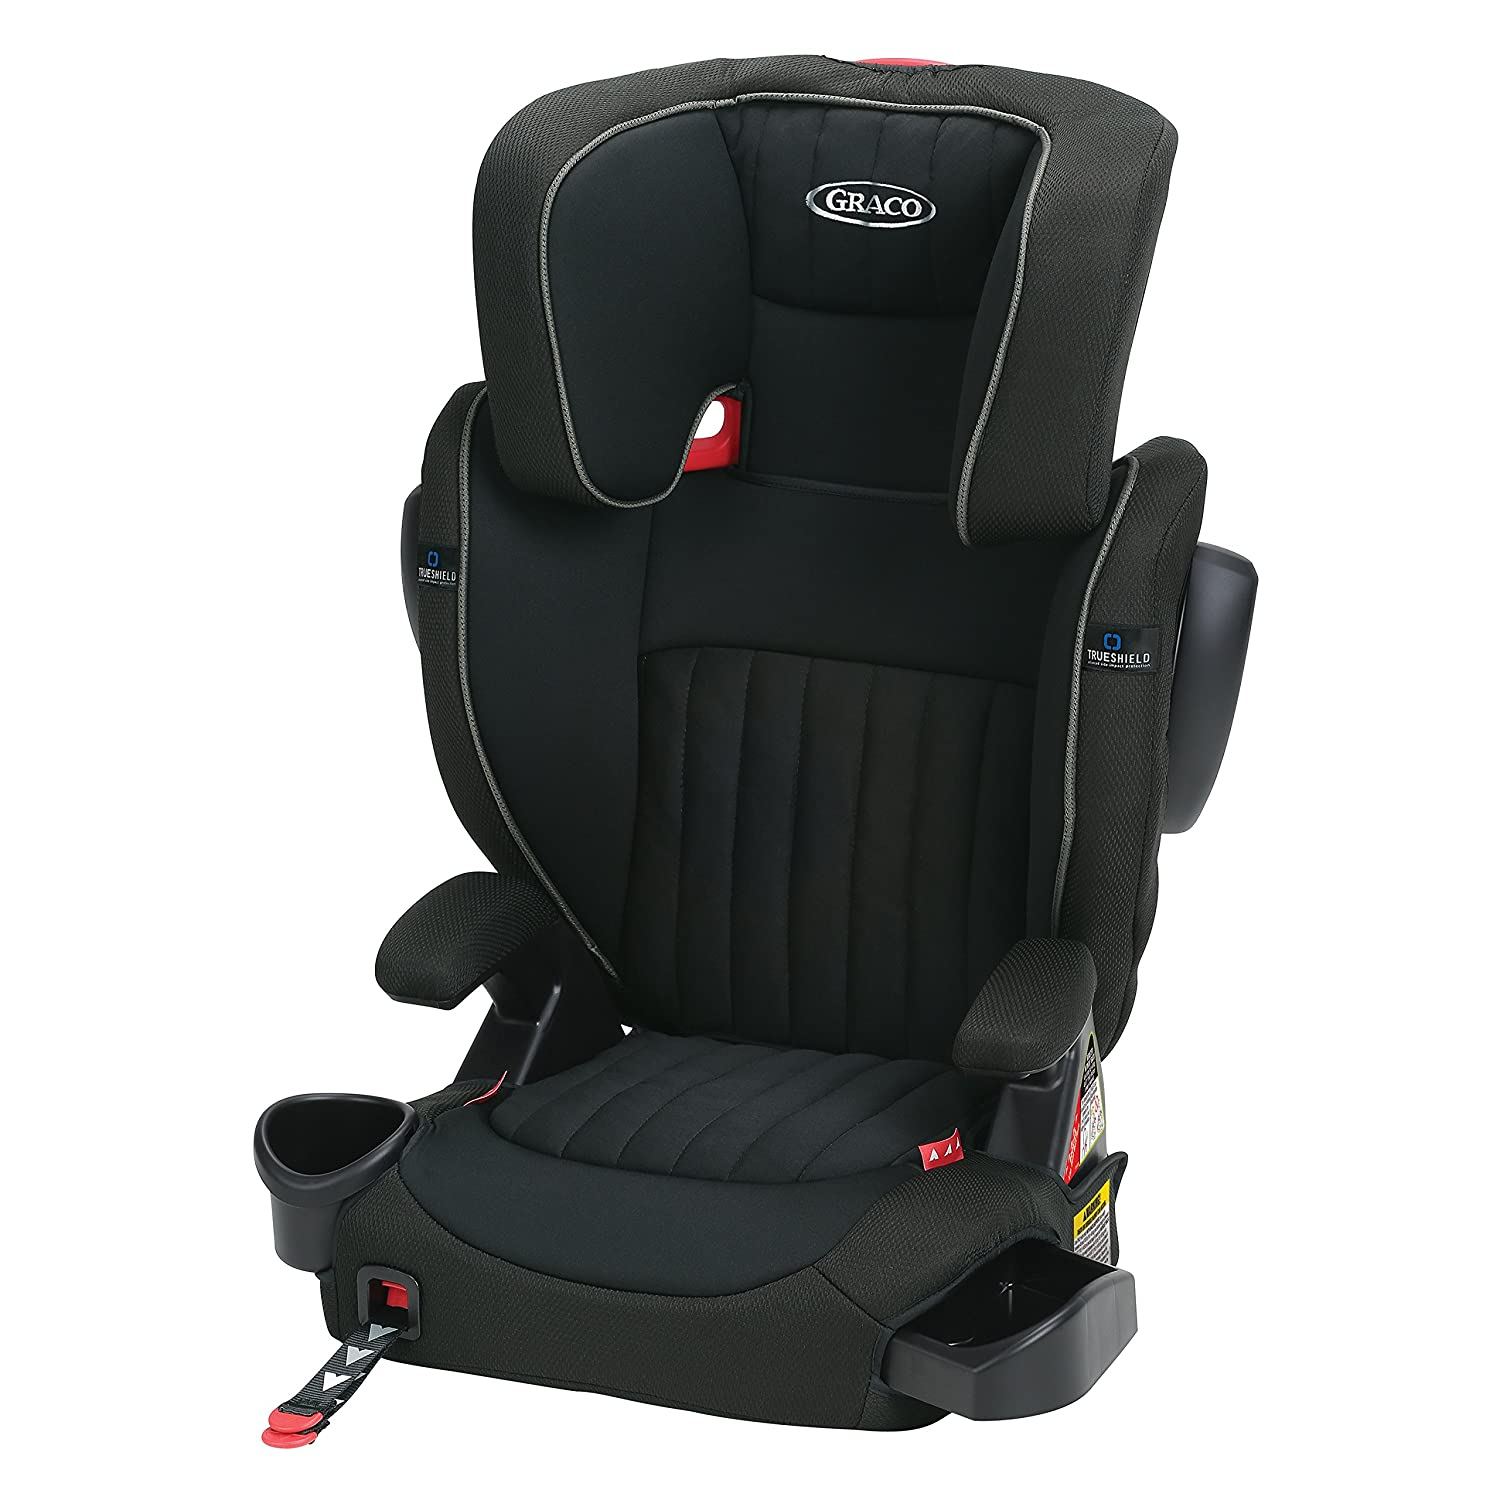 Graco TurboBooster LX High Back Booster Seat, Featuring TrueShield Side Impact Technology